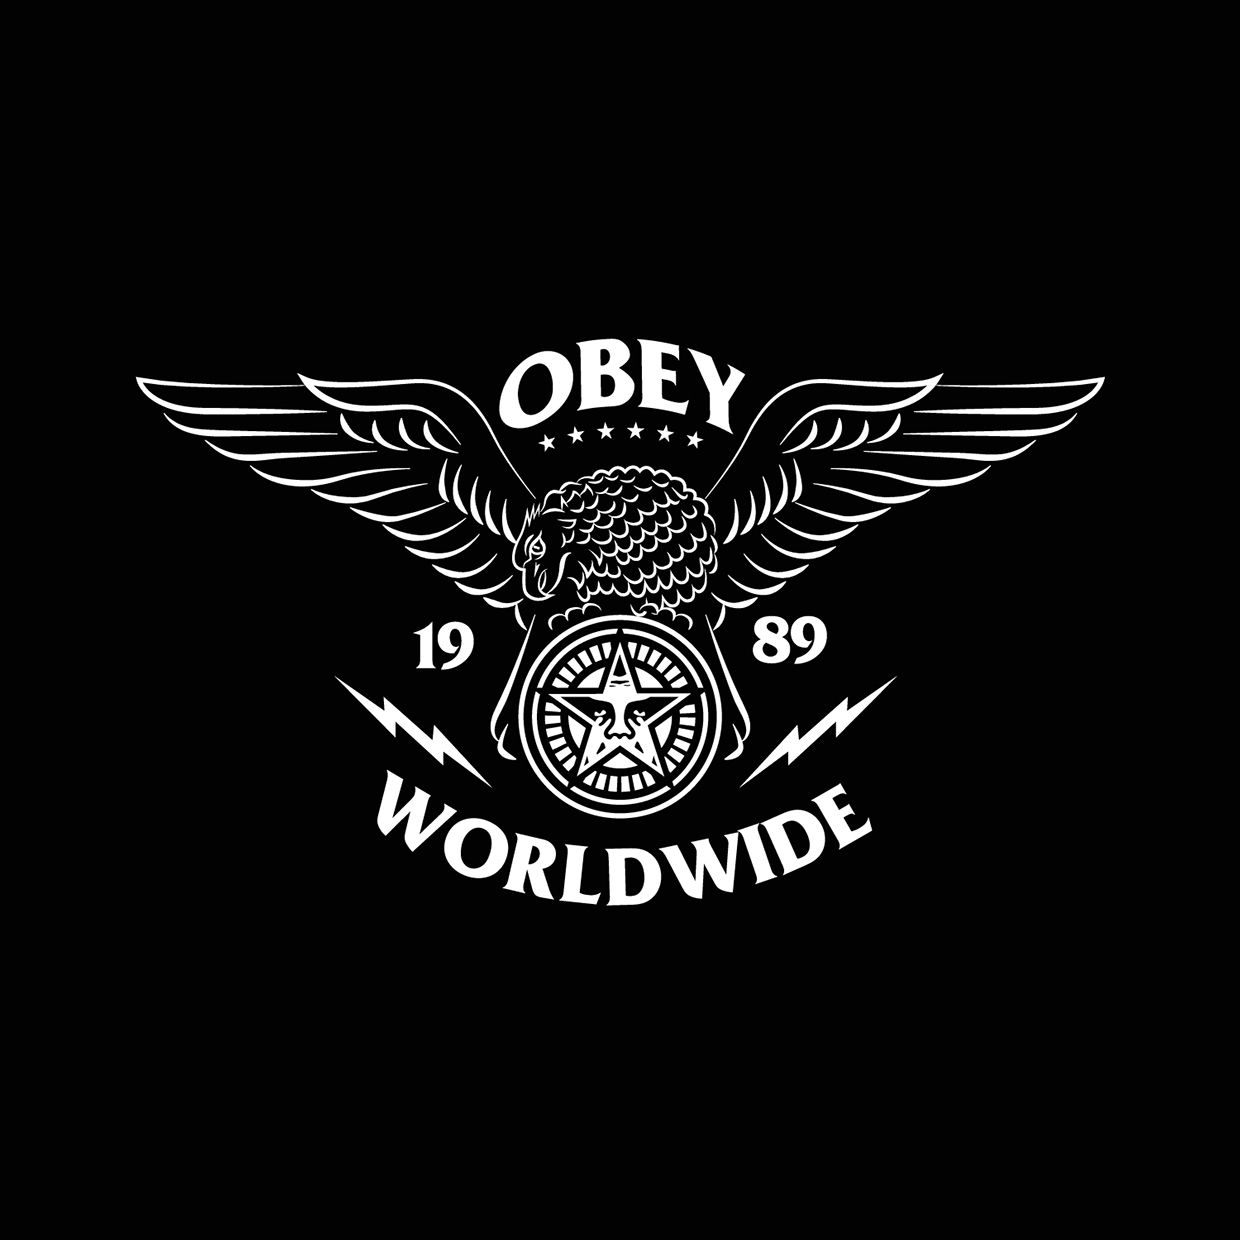 Obey - Holiday '14 on Behance